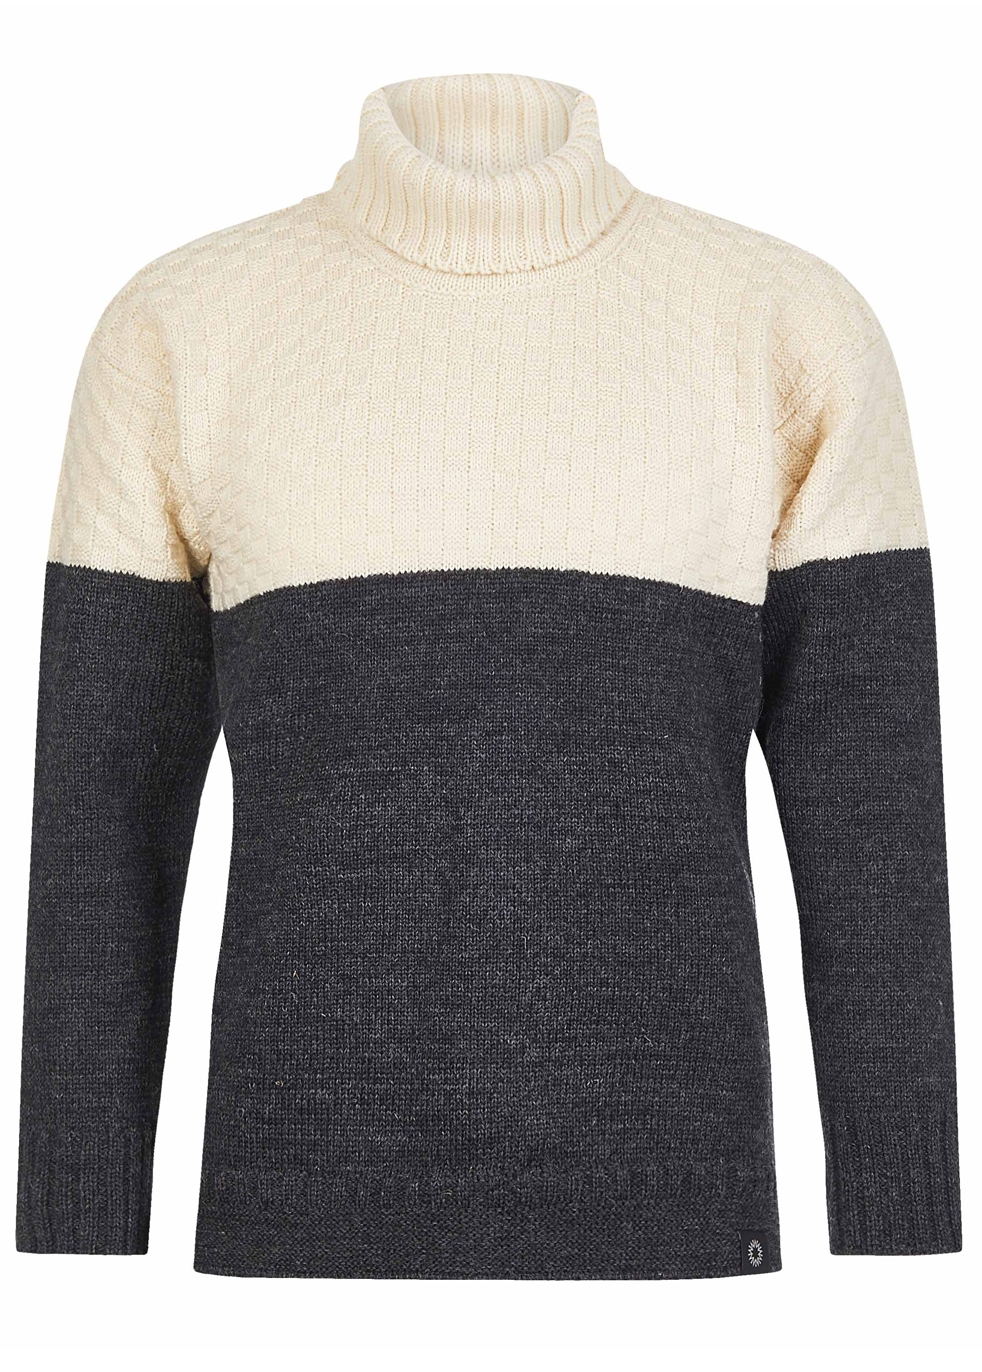 SHACKLETON Signature Sweater - Cream-Charcoal